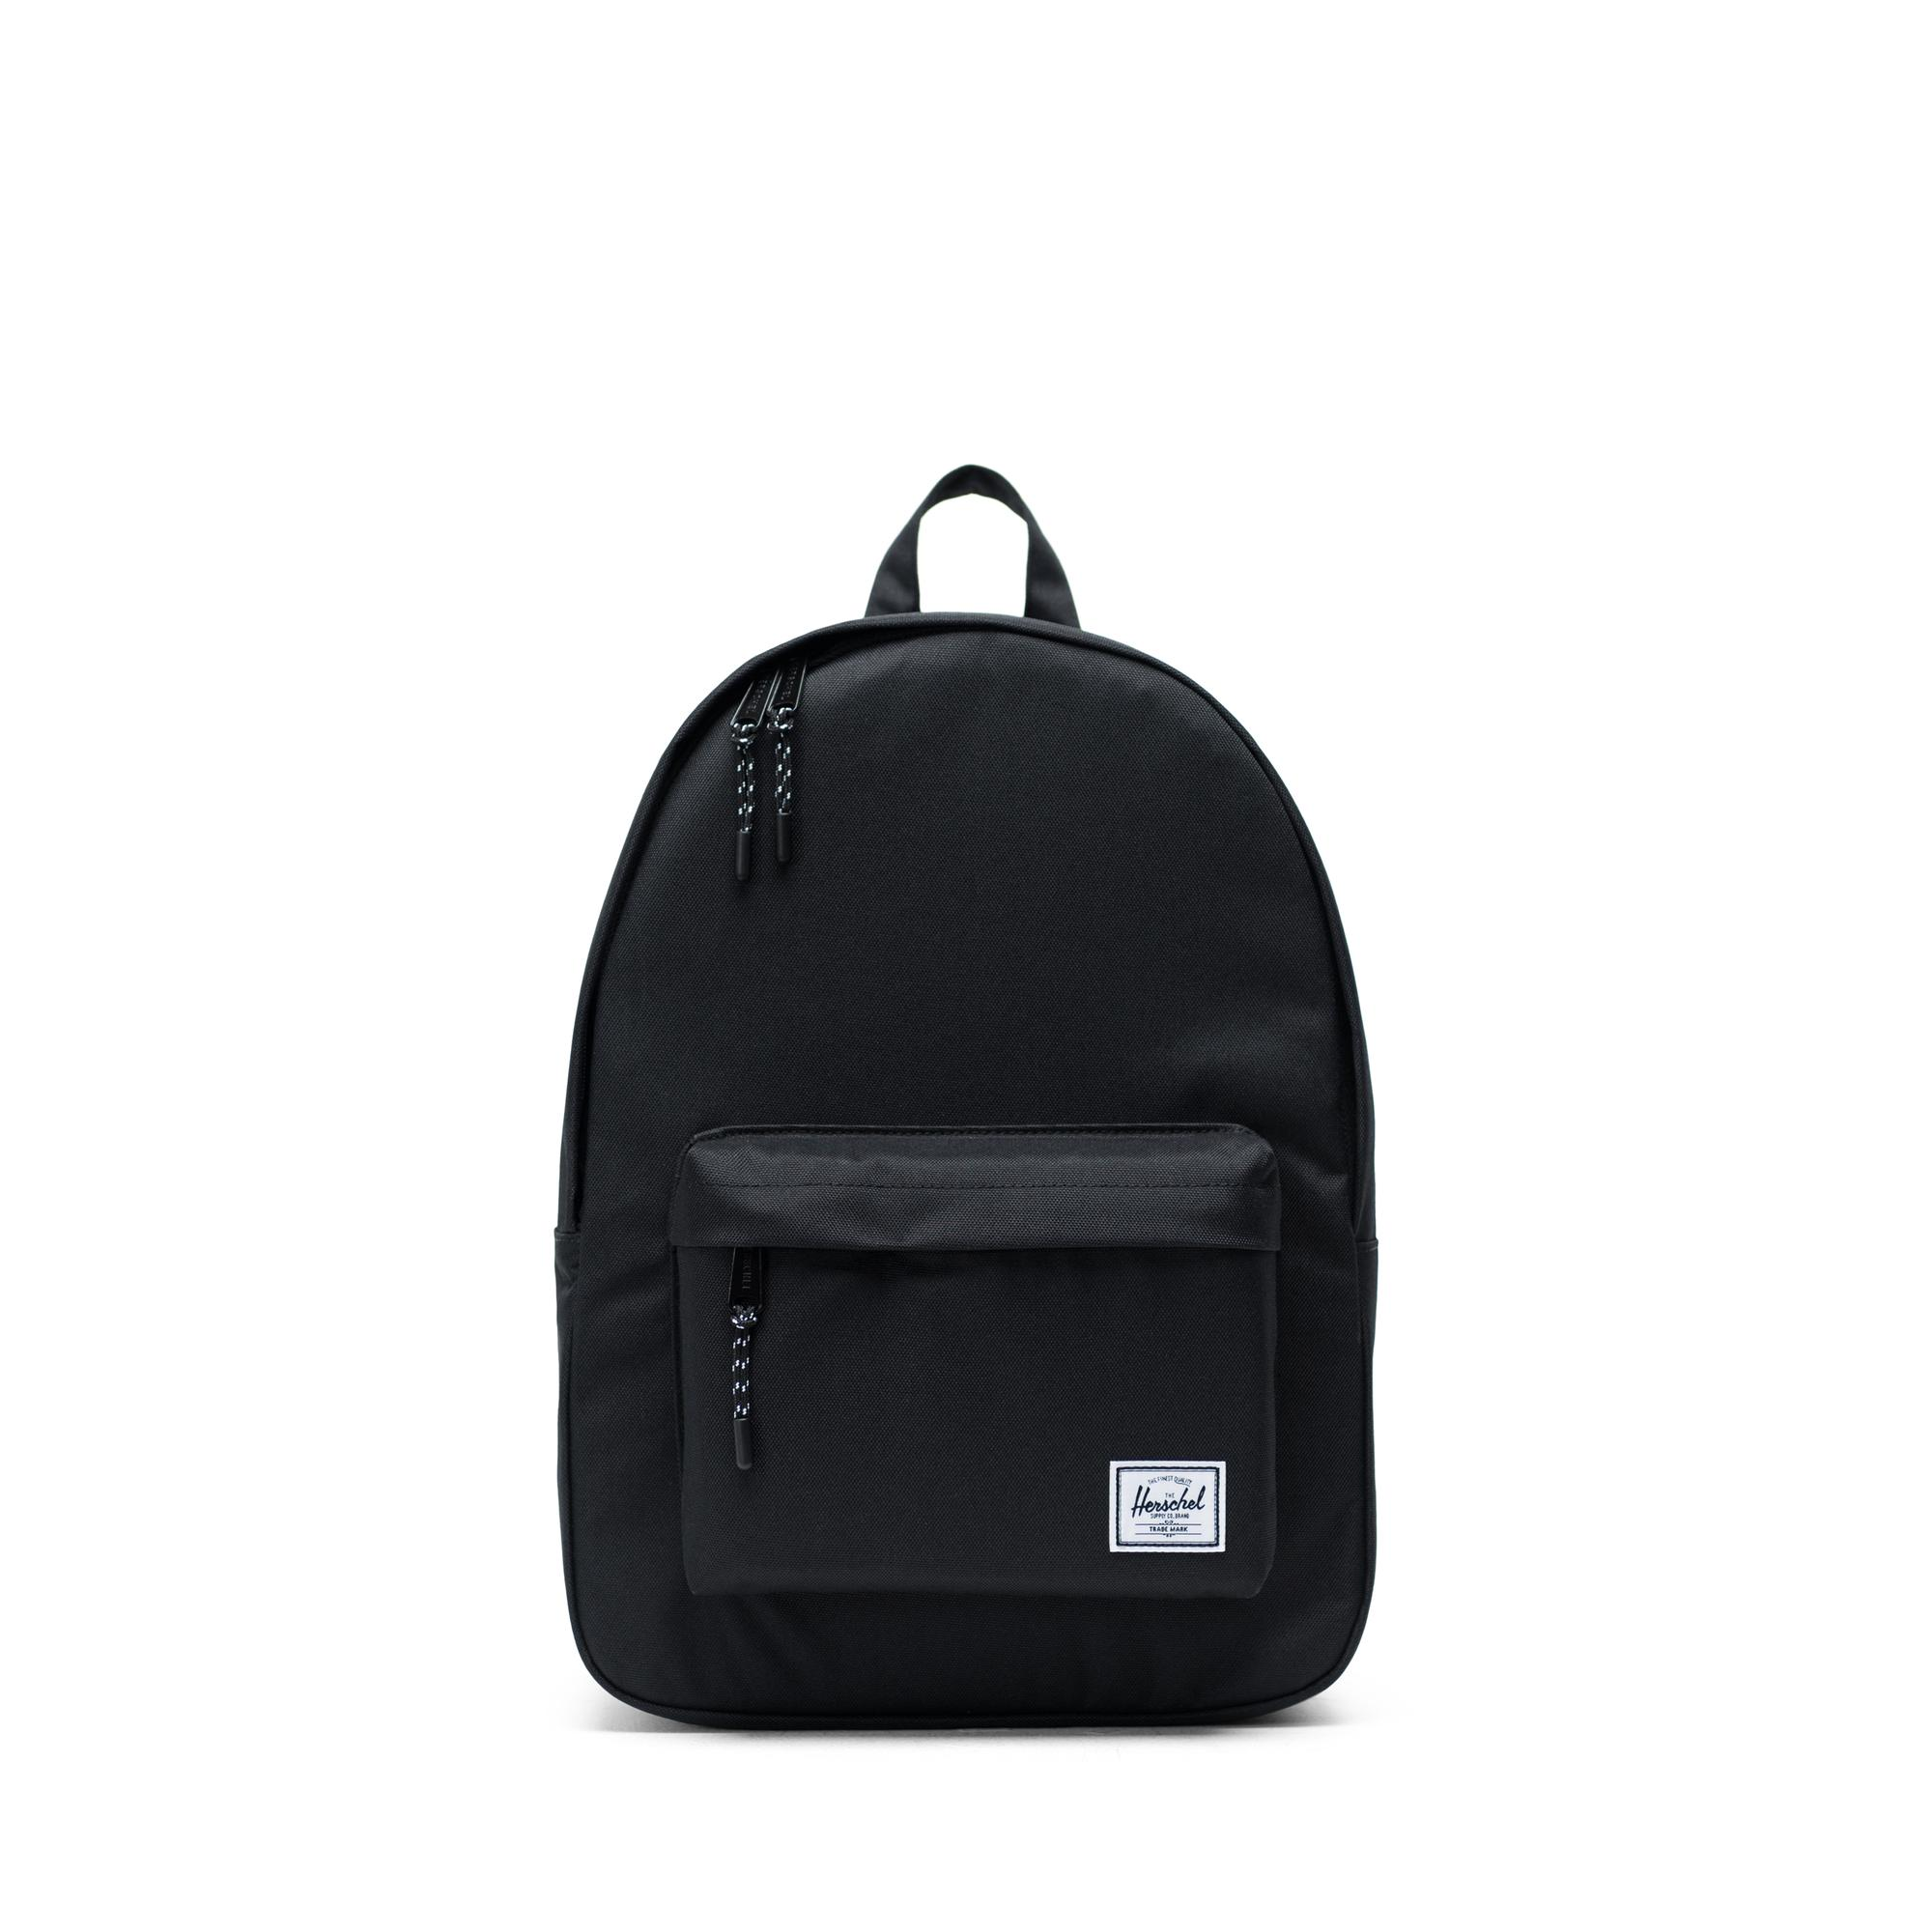 4a28e3f16aac Classic Backpack Mid-Volume